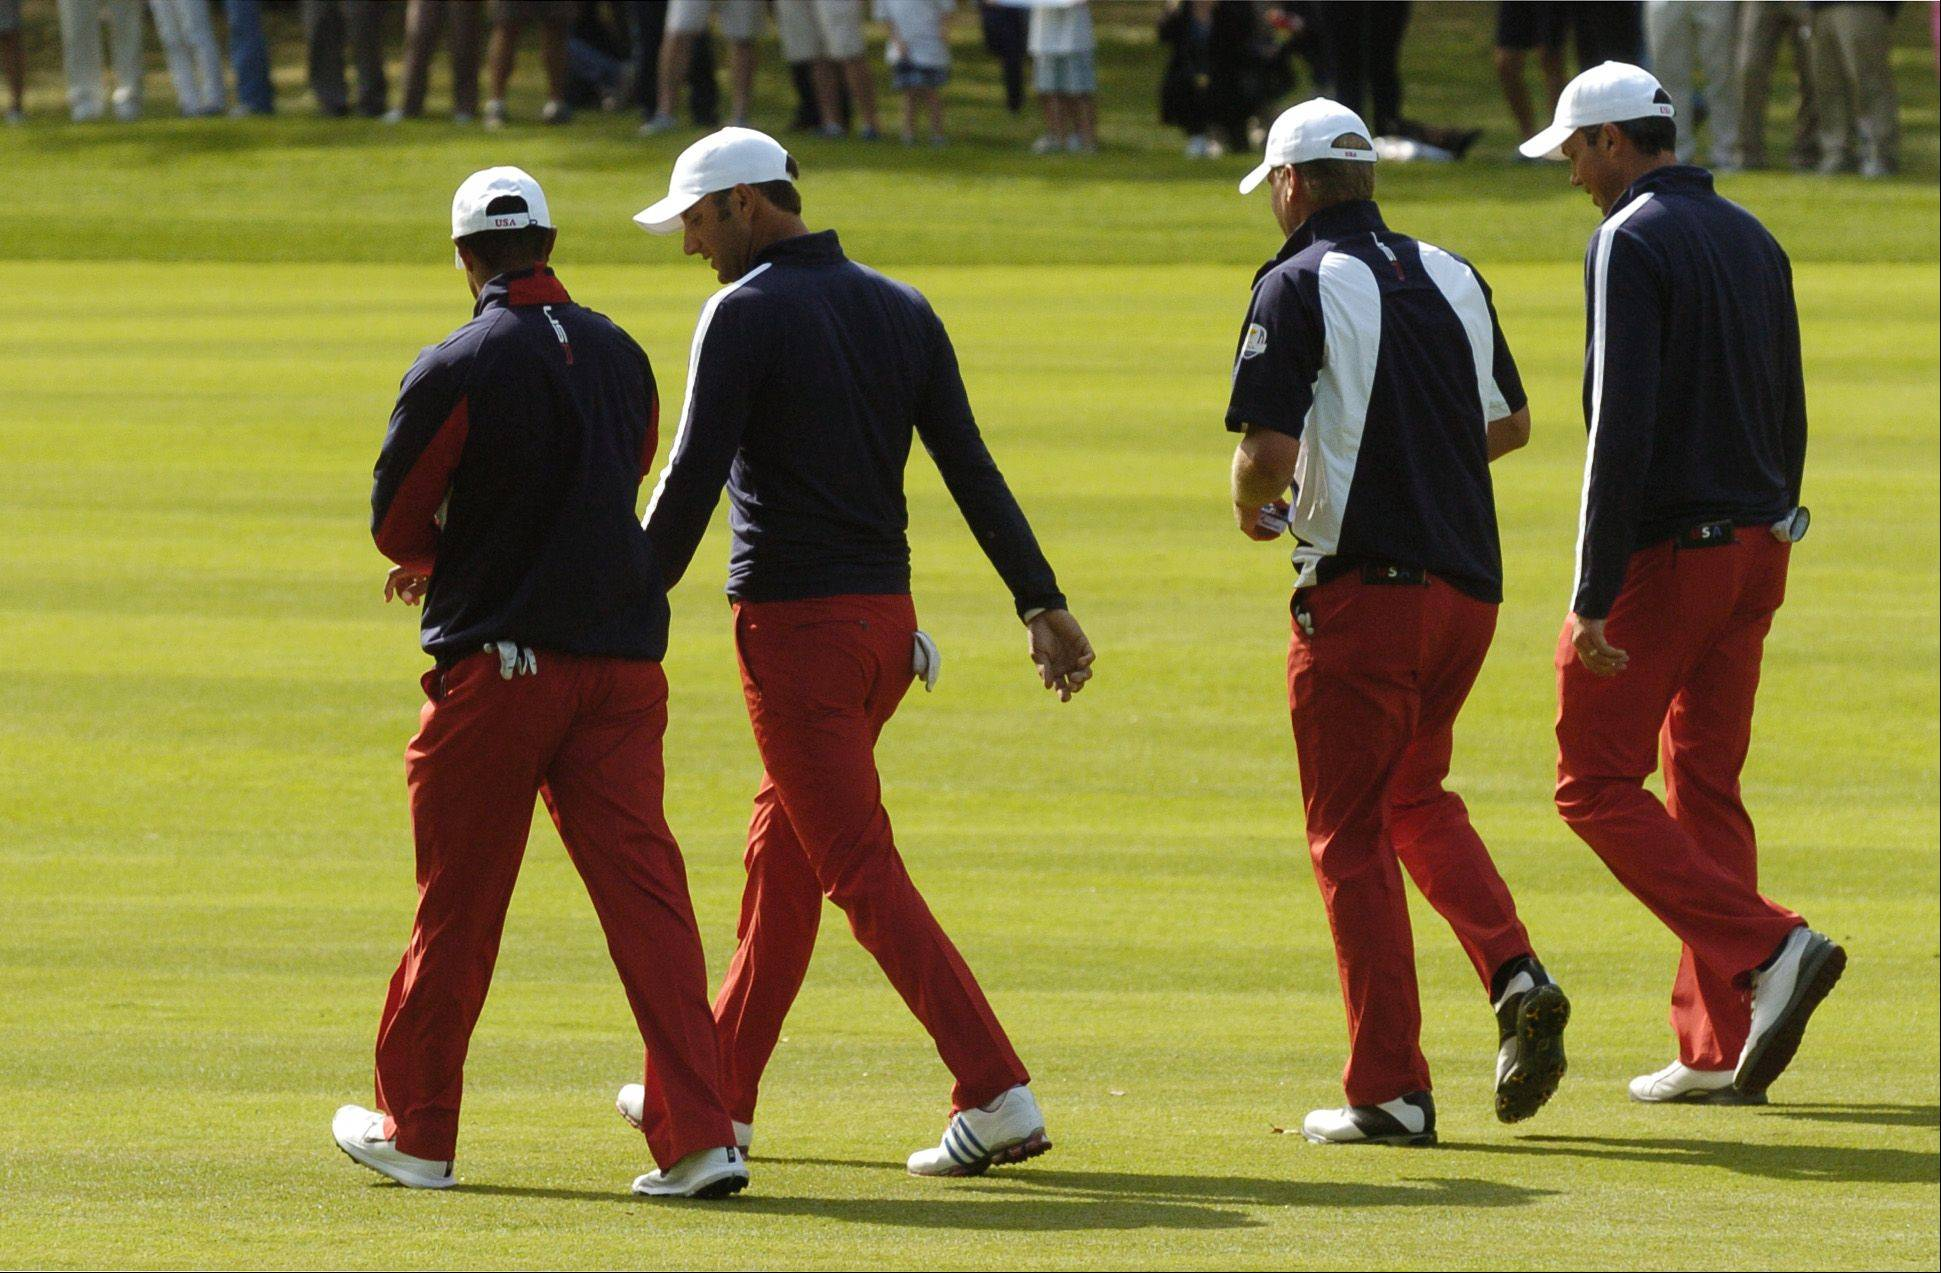 Team United States walks up the ninth fairway .